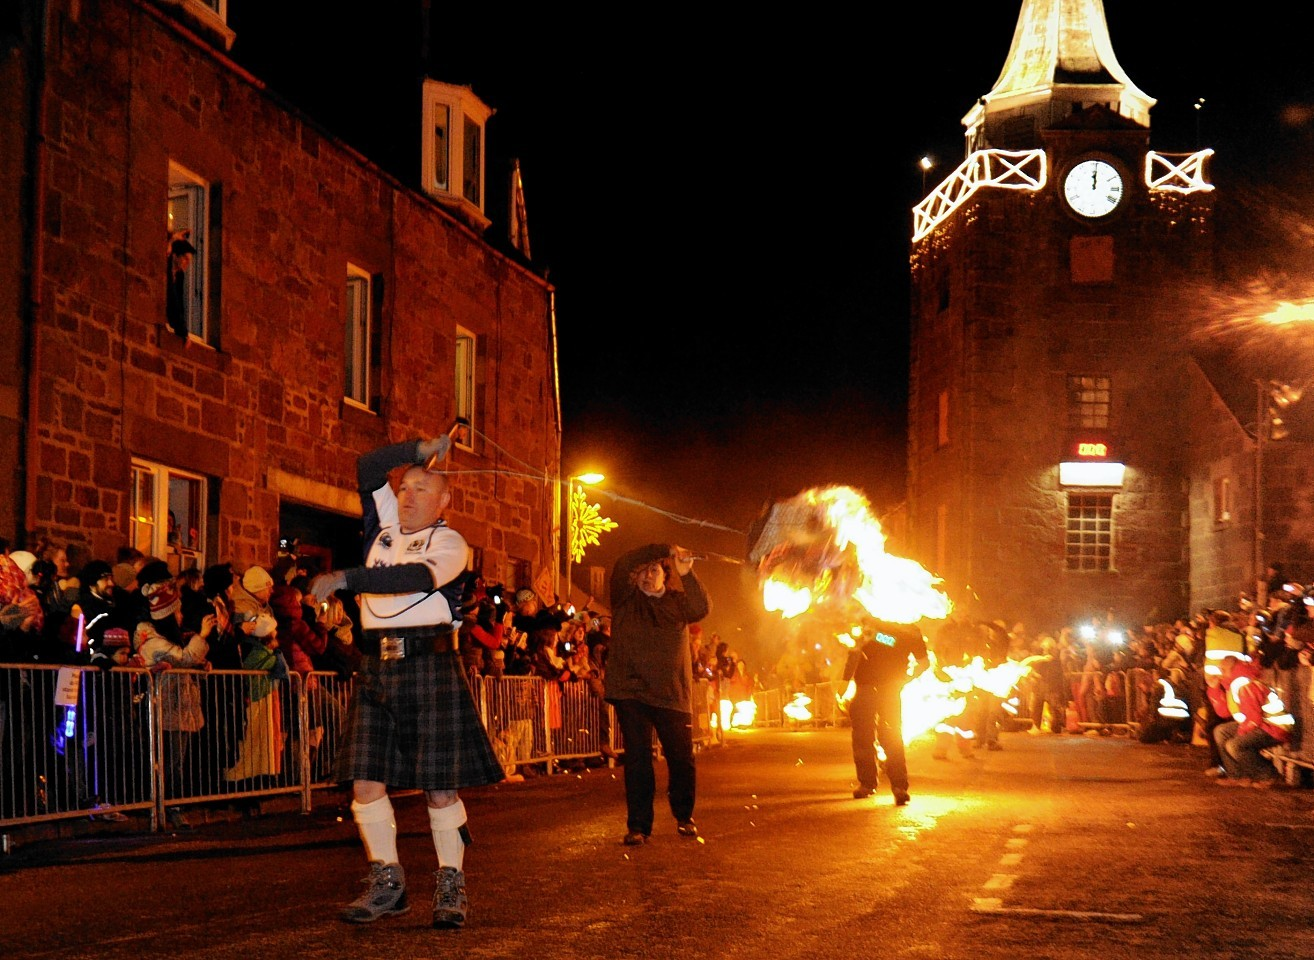 The fireballs in Stonehaven